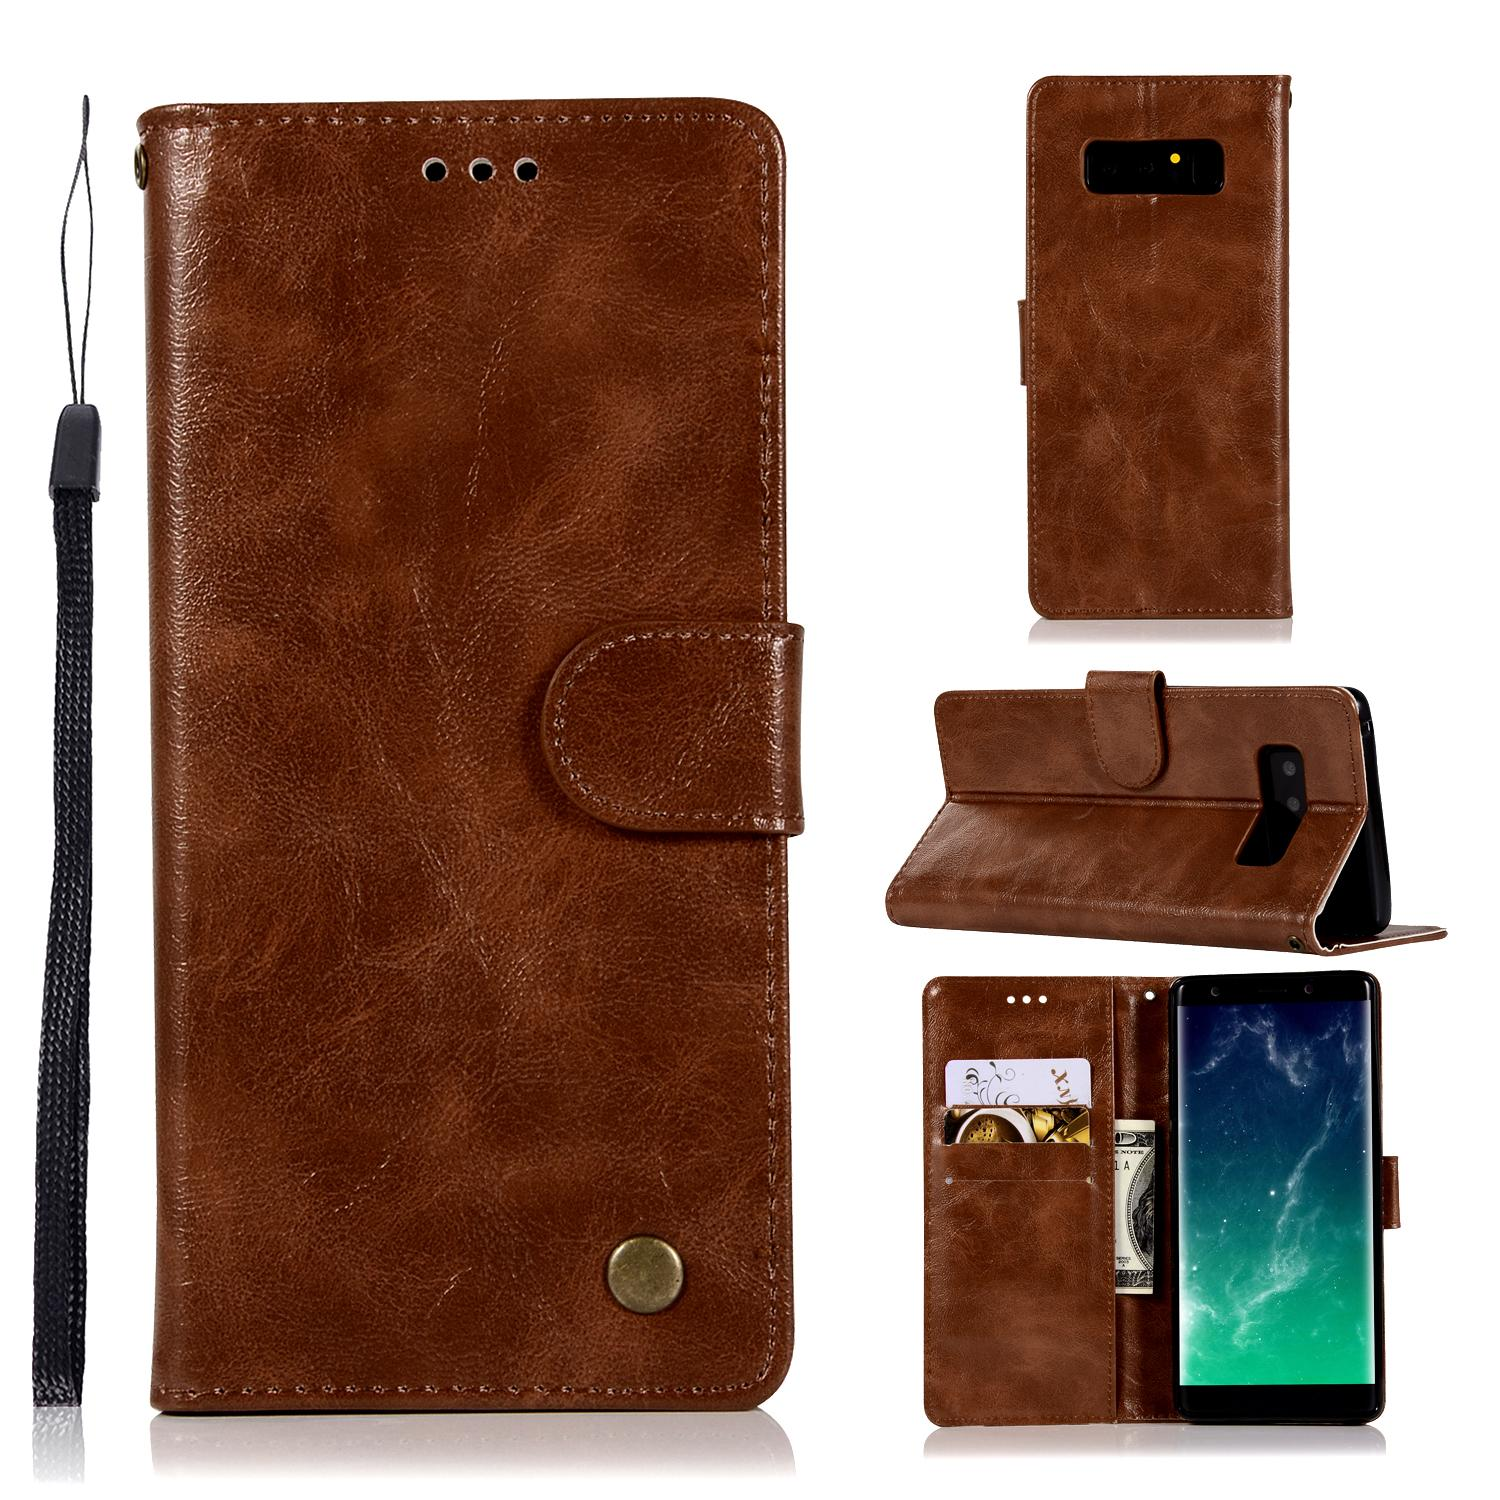 Casing For Samsung Galaxy Note 8,reto Leather Wallet Case Magnetic Double Card Holder Flip Cover By Life Goes On.